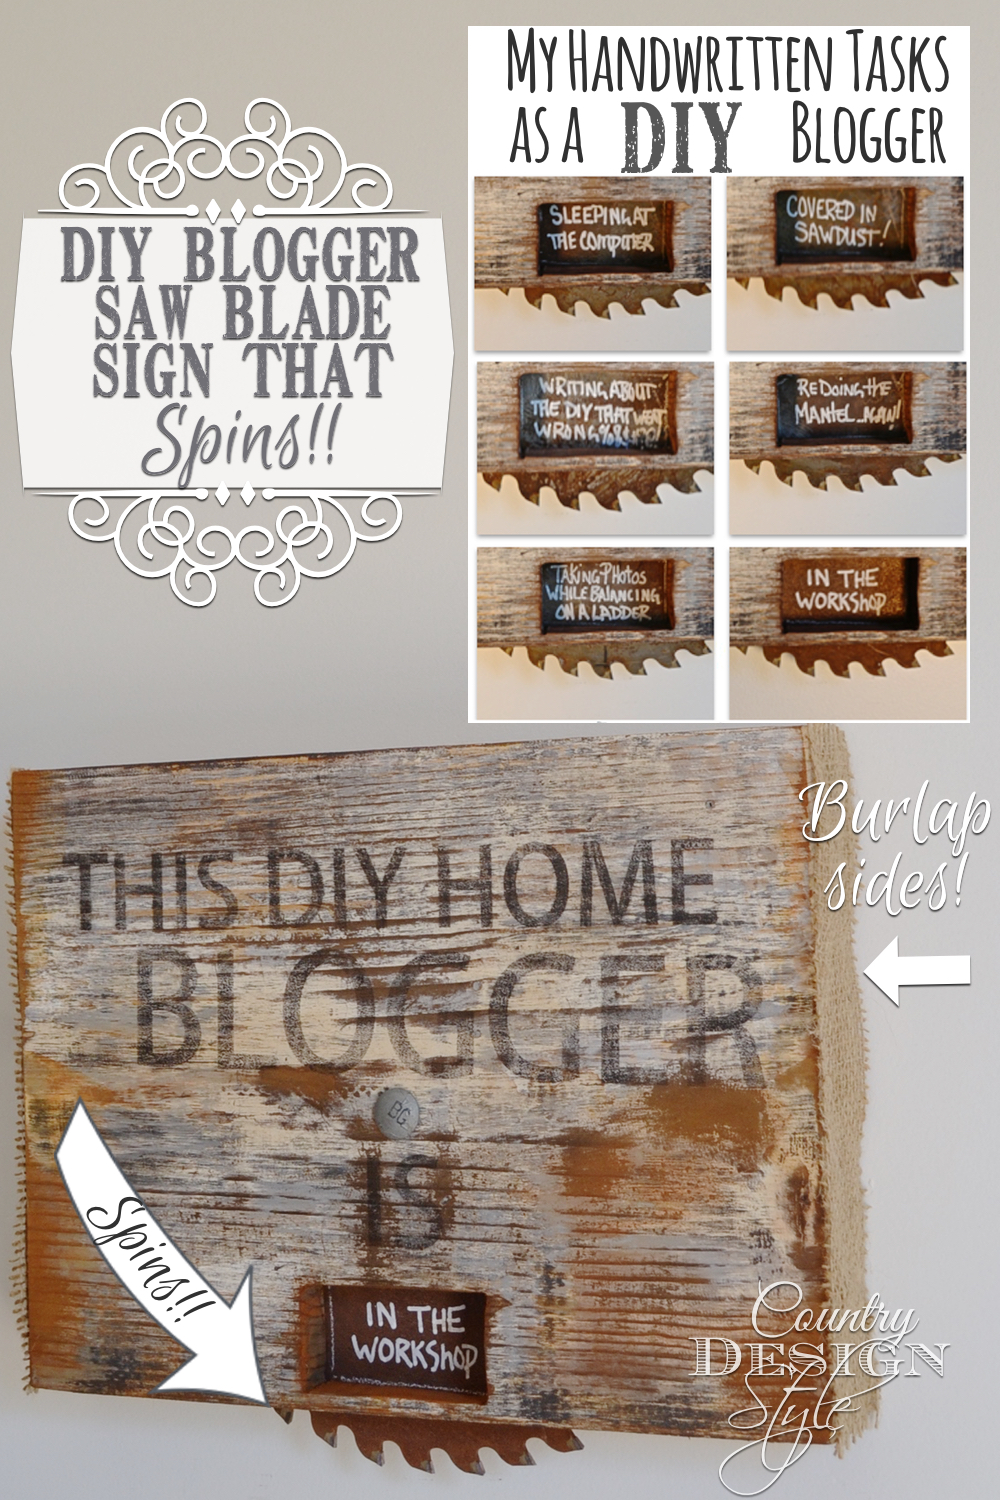 DIY blogger sign made from scrap wood and rusty junky saw blade. Plus is spins! Revealing tasks in the window. Burlap covers the edges. Country Design Style